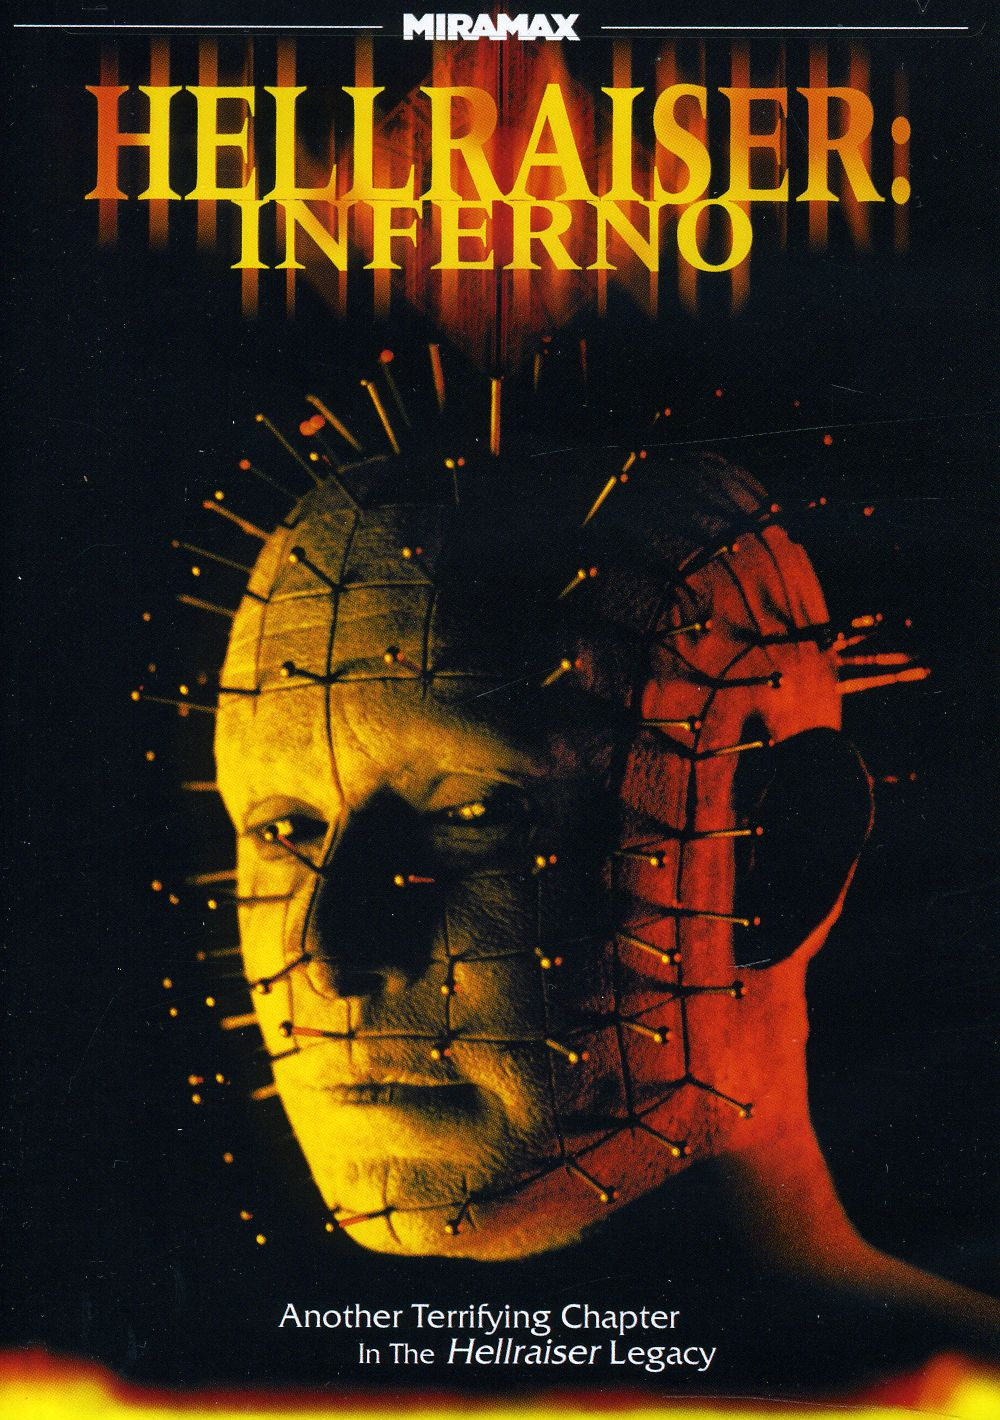 22 - Hellraiser: Inferno